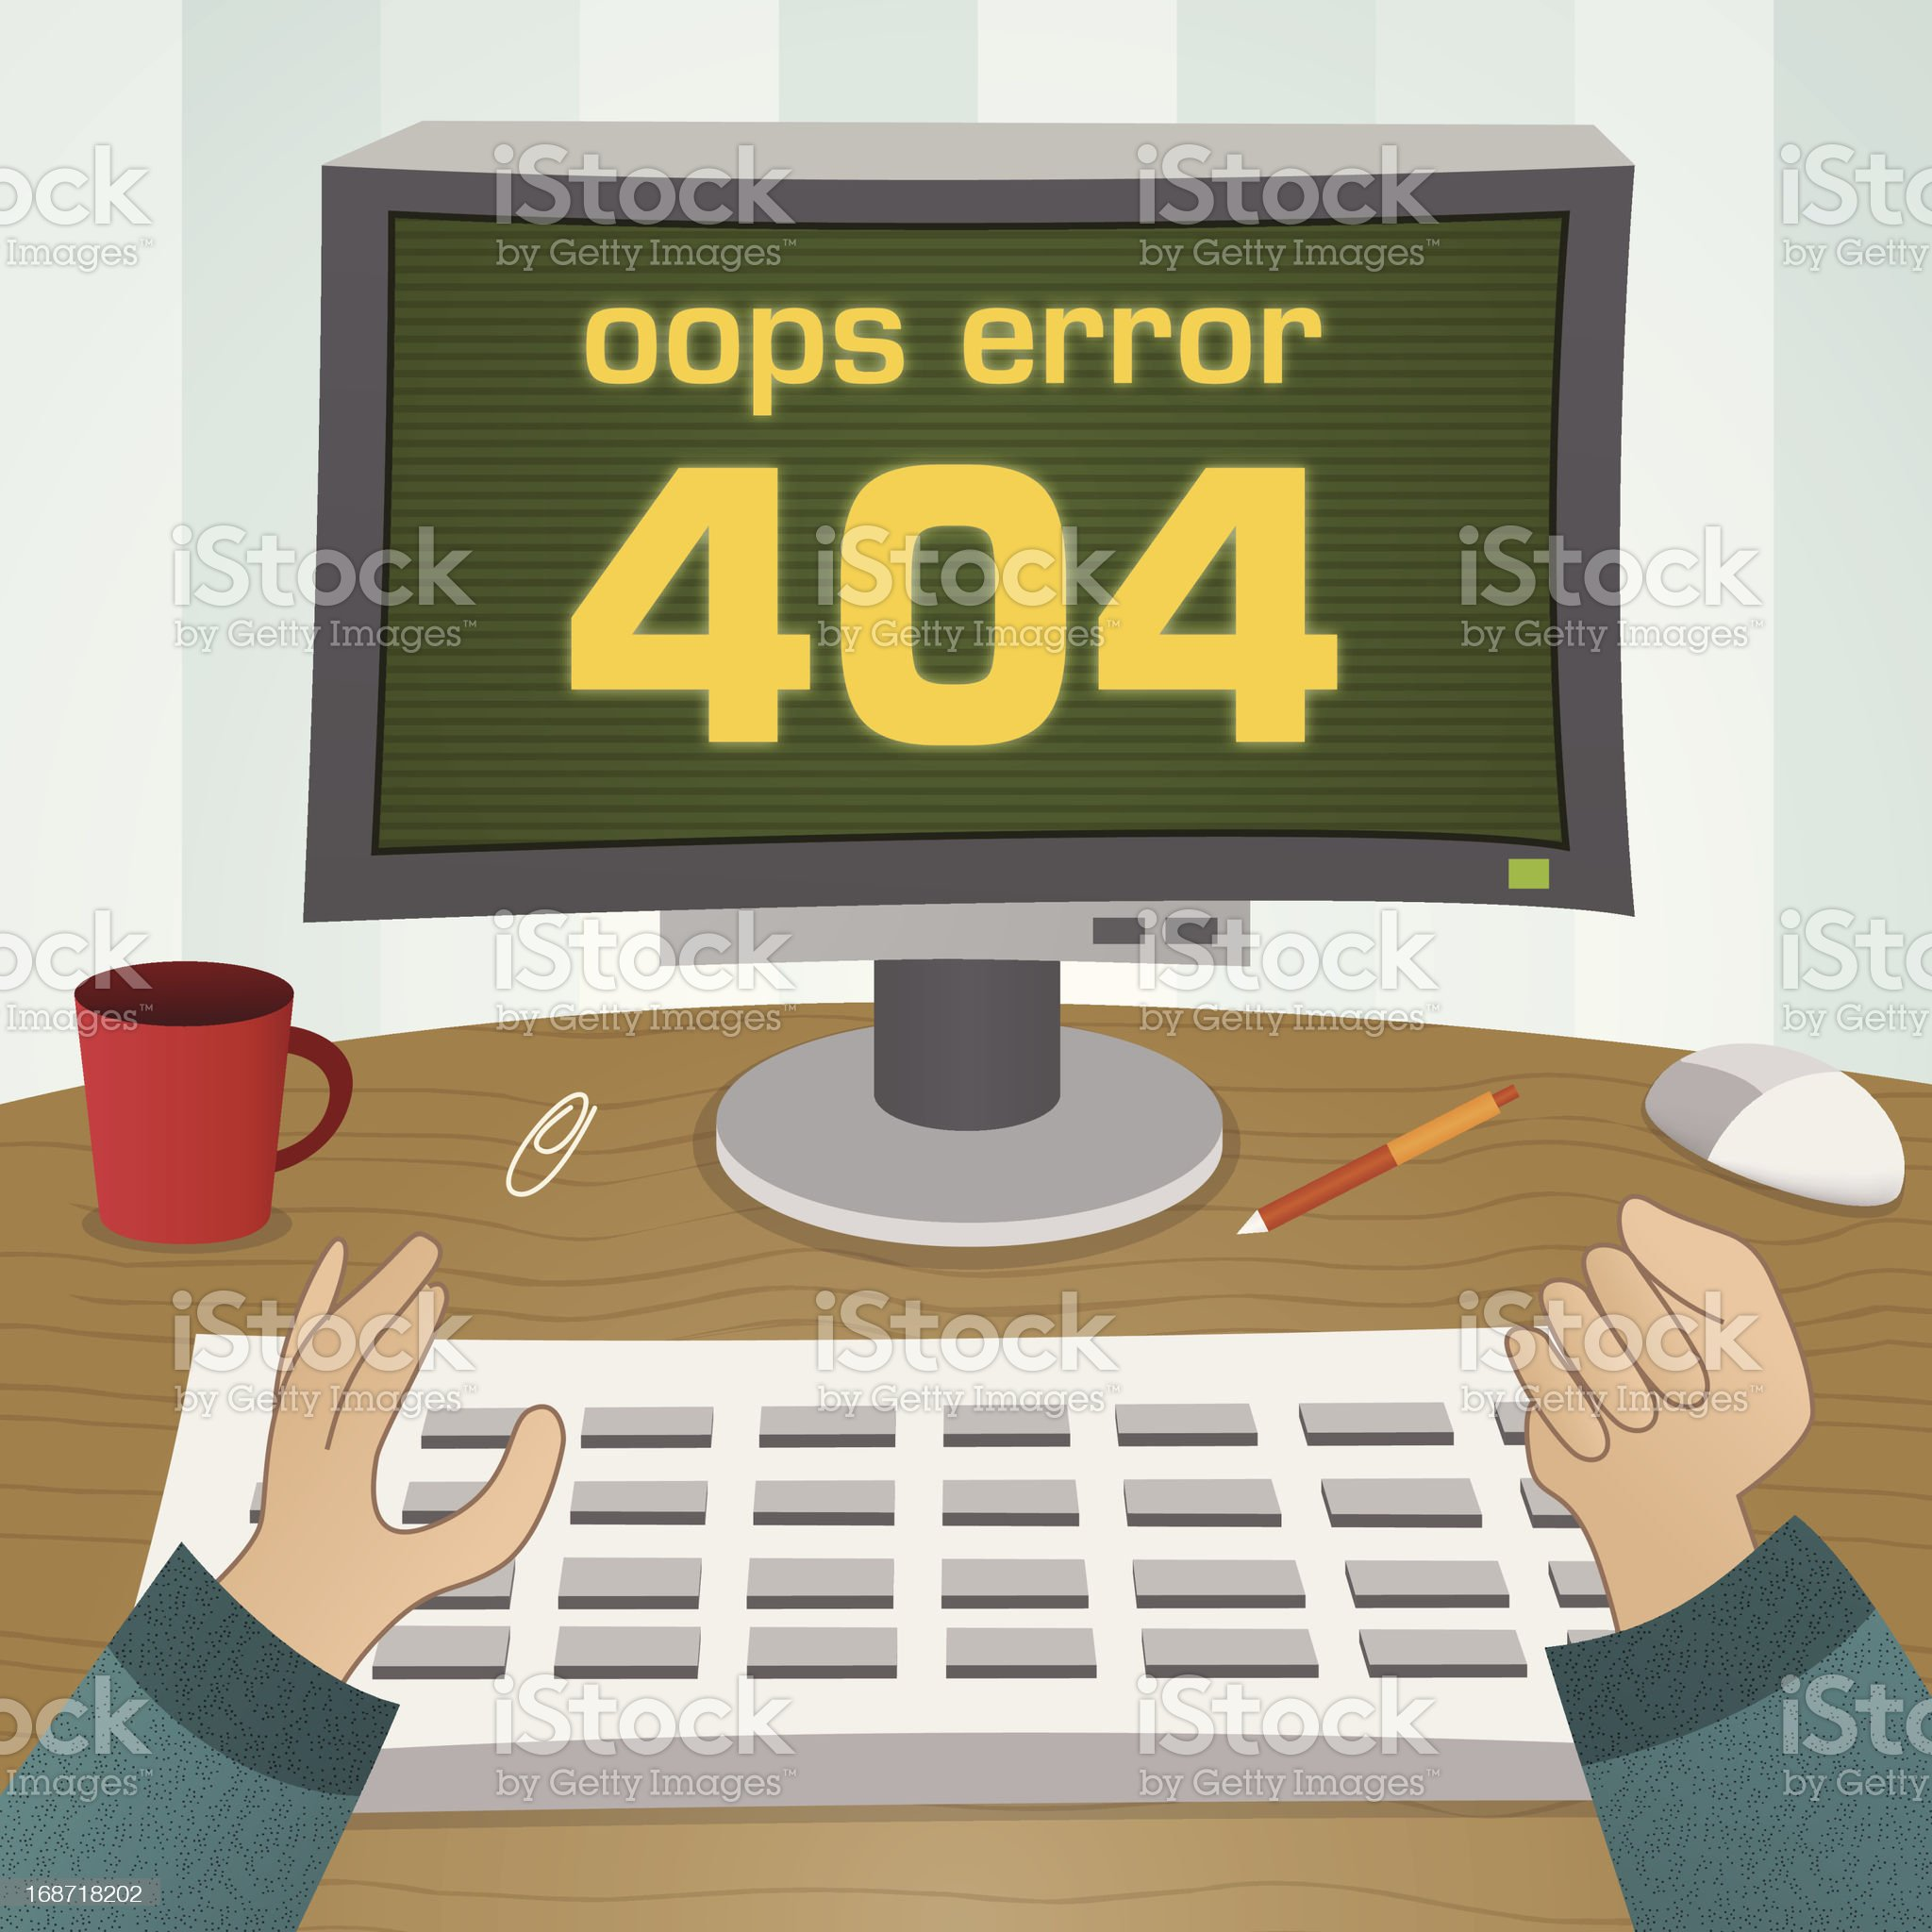 page not found error 404 royalty-free stock vector art